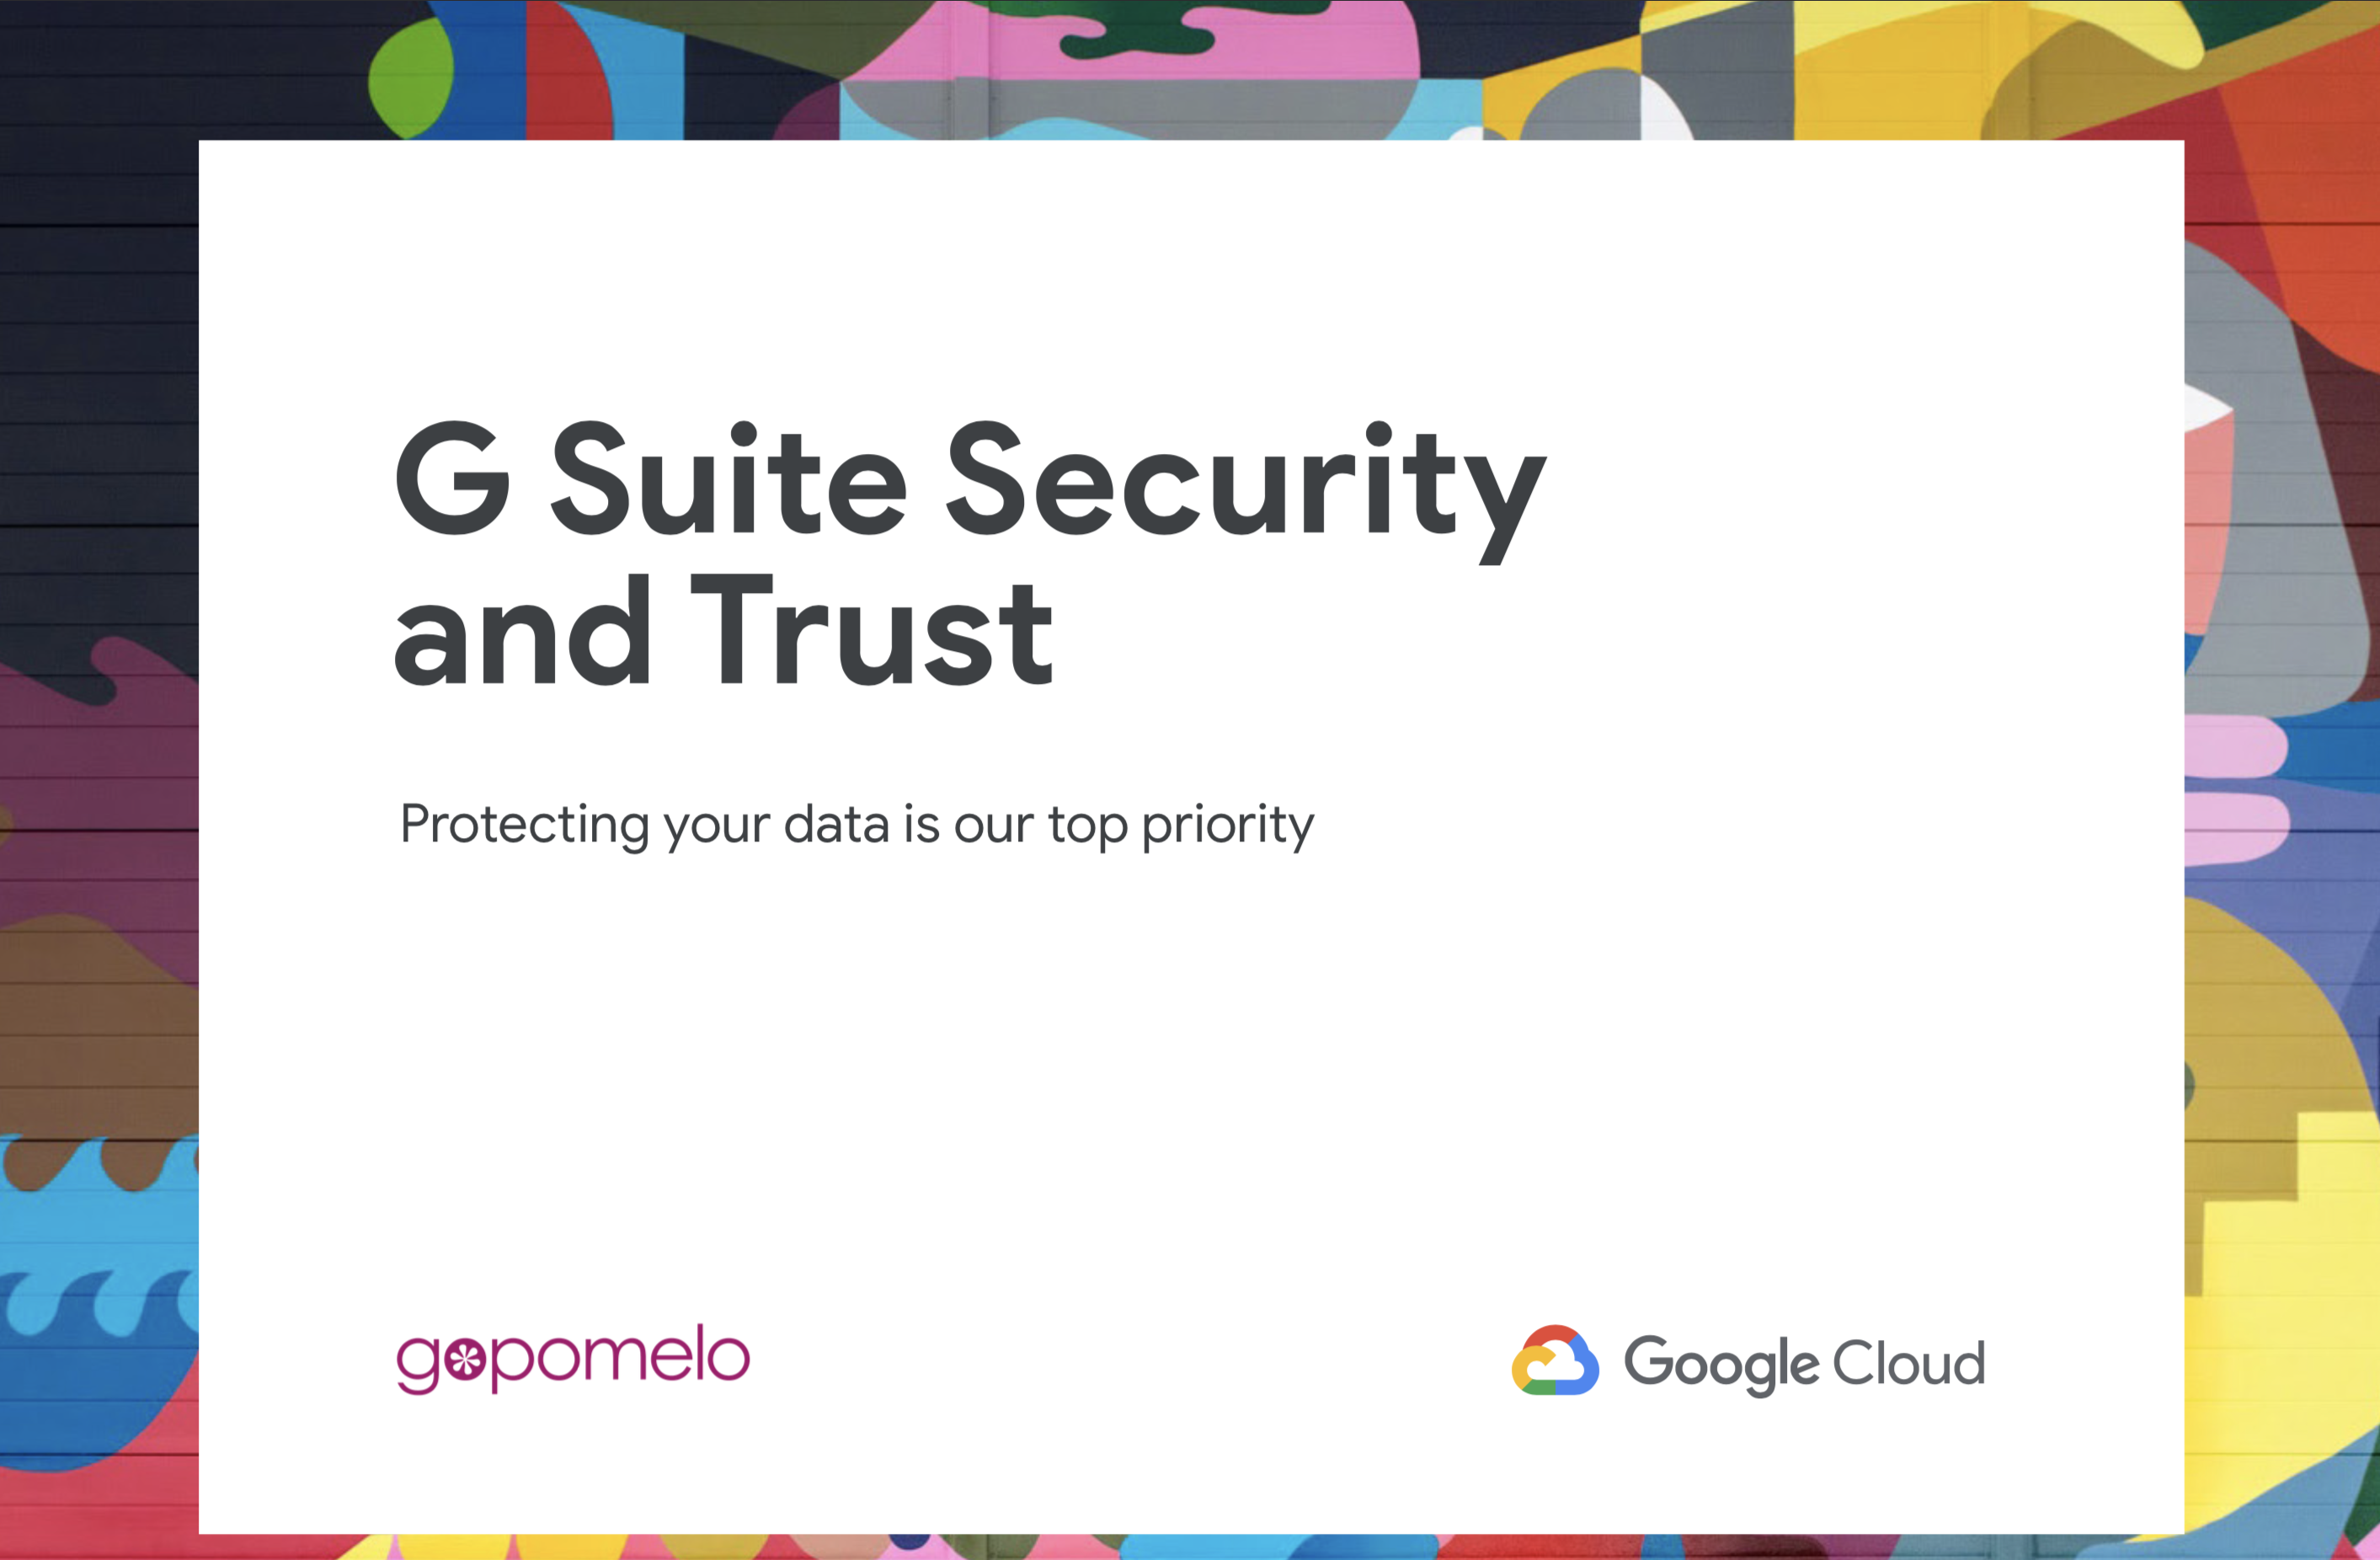 G_Suite_security_and_trust.png